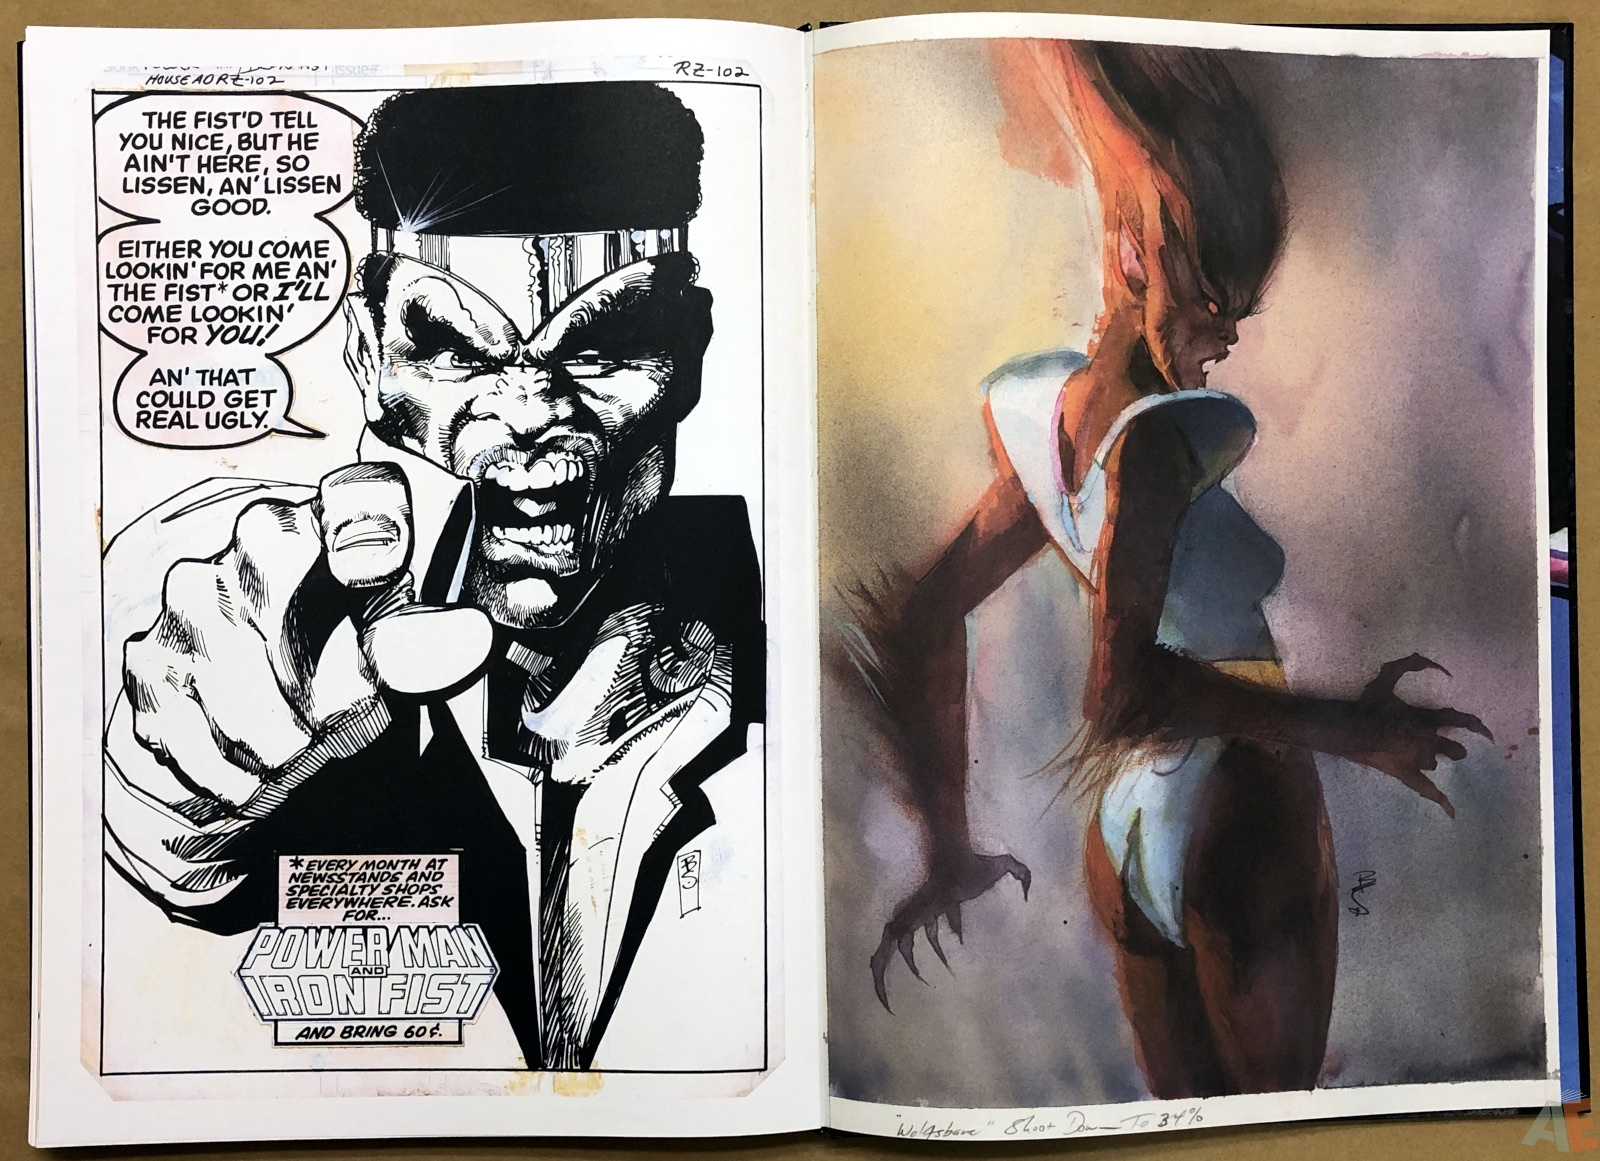 SIGNED Bill Sienkiewicz Mutants /& Moon Knights Elektra Artifact Editon